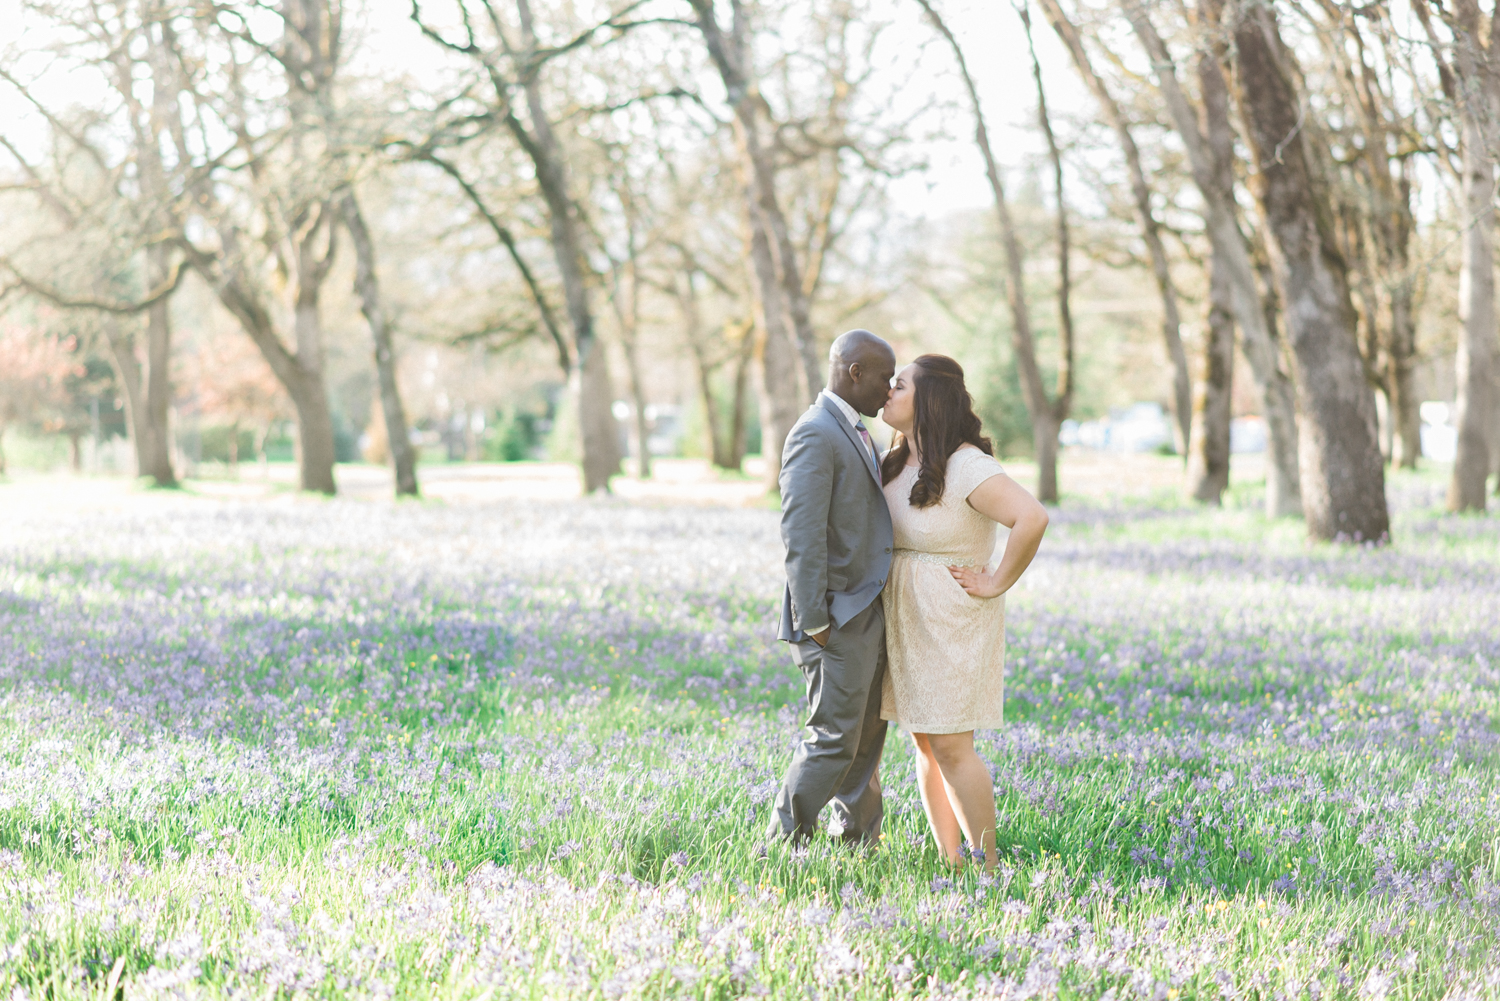 romantic-salem-engagement-photos-bush-park-shelley-marie-photo-1